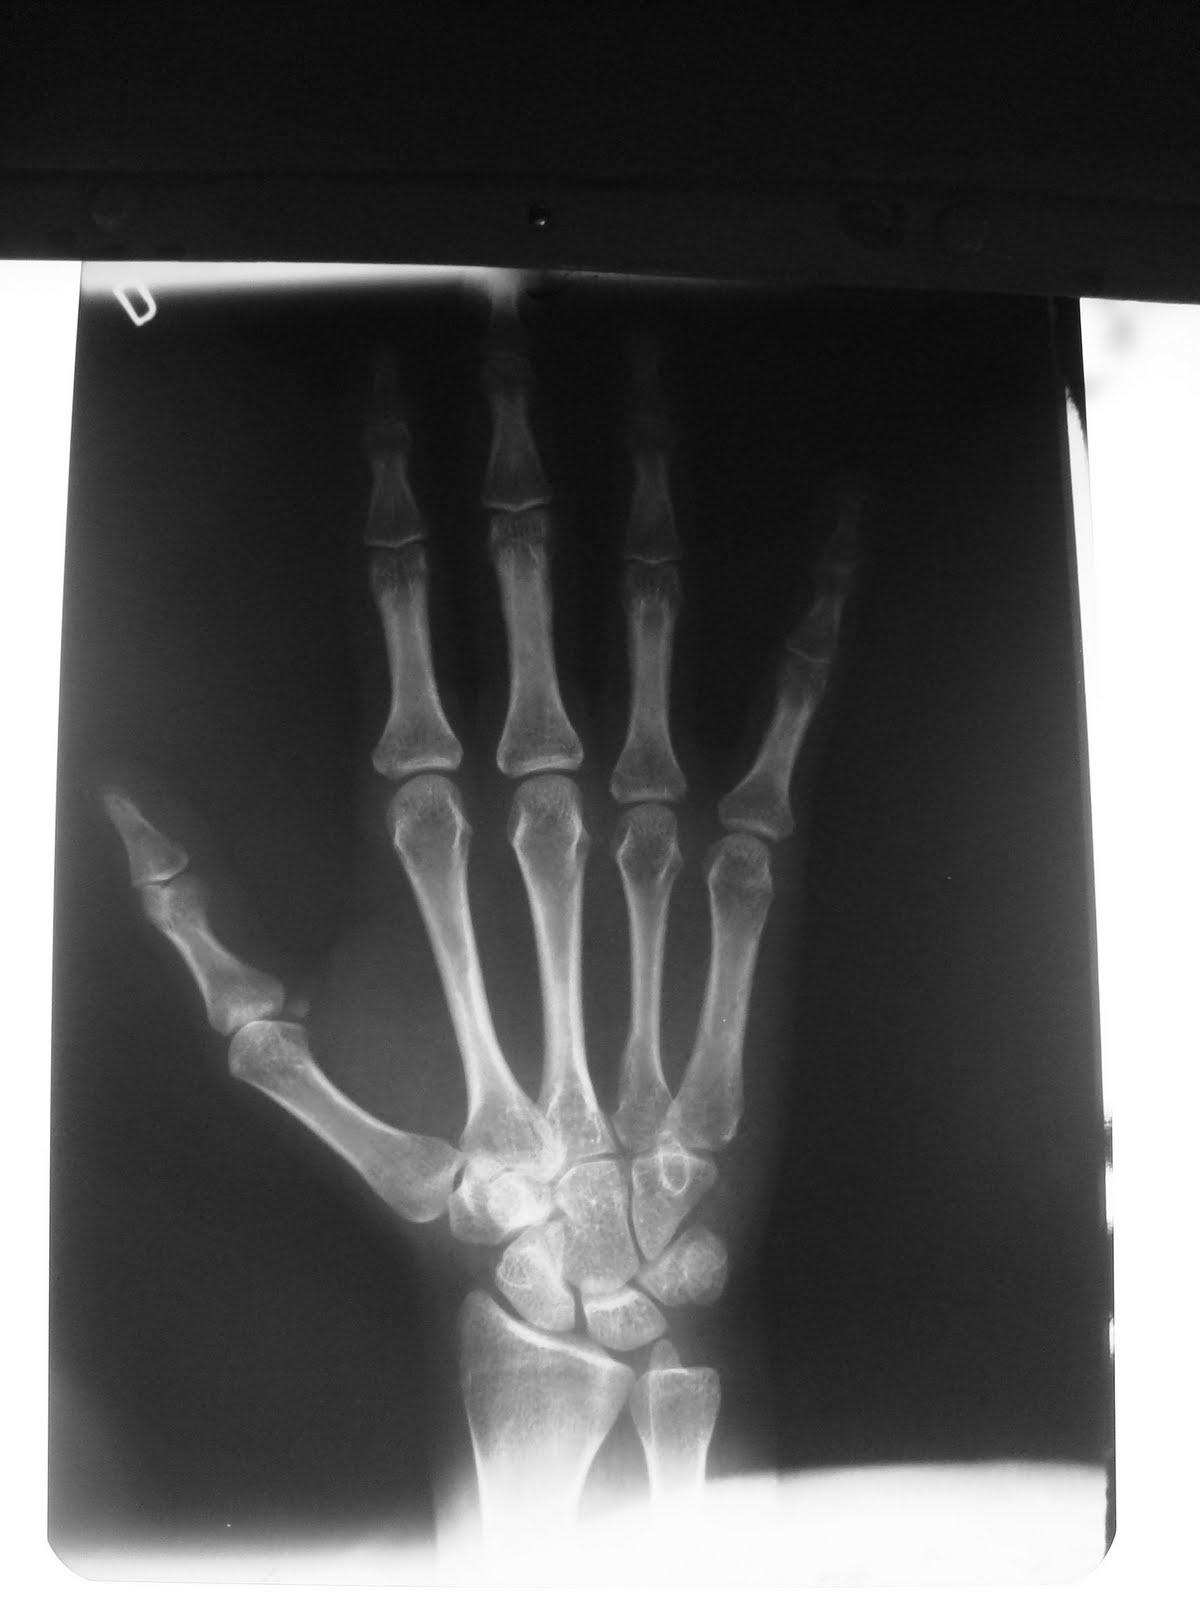 Radiologia 1 mano proyecci n p a nota a p for Cuarto oscuro rayos x